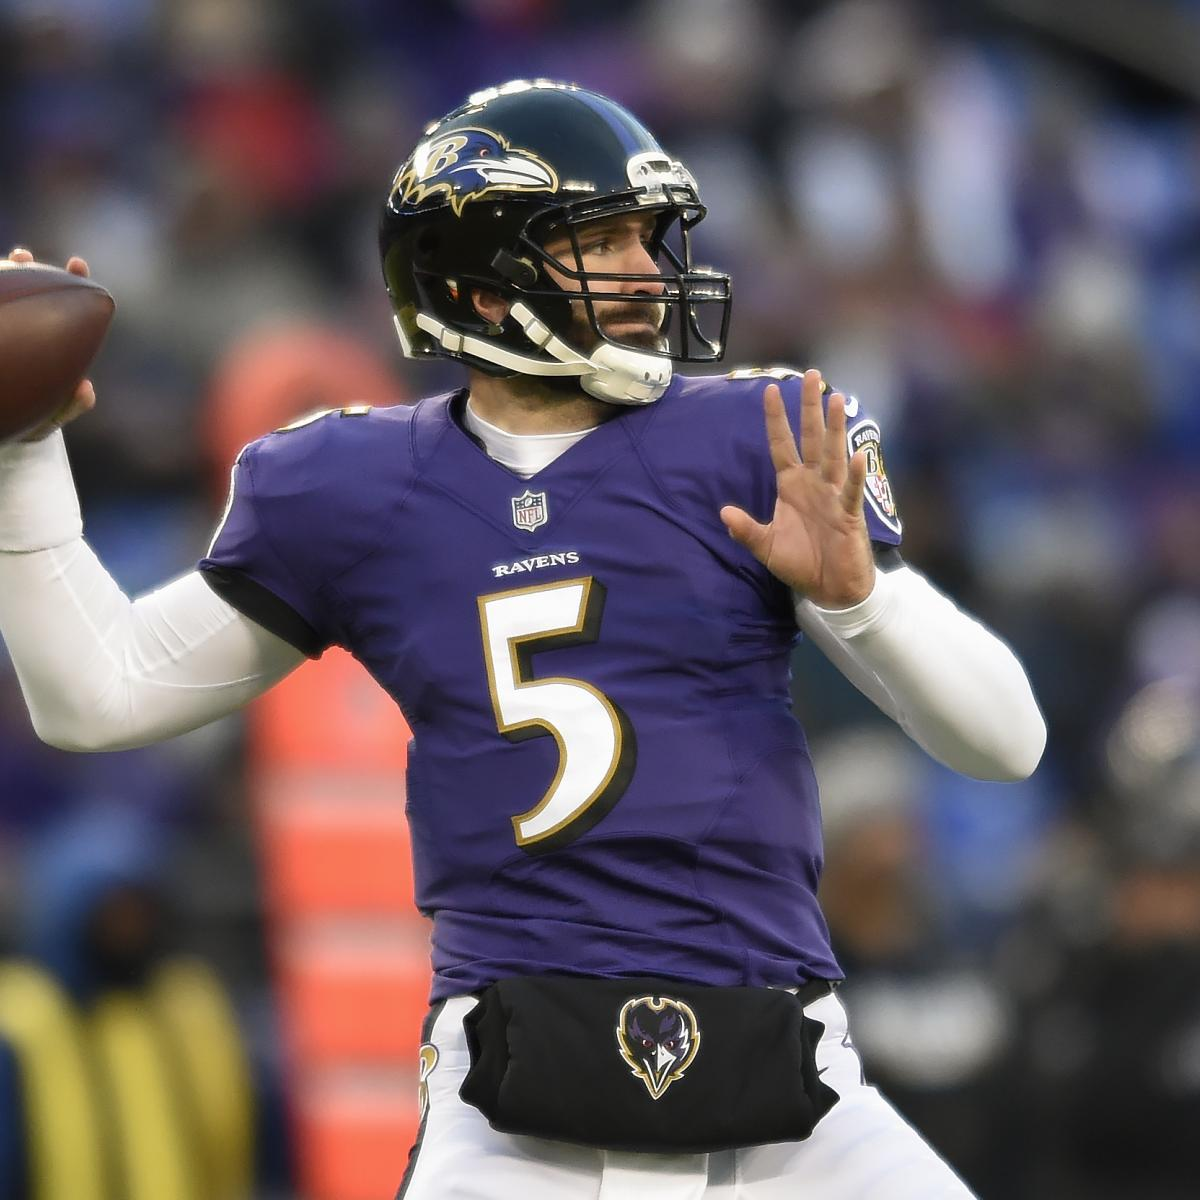 2018 Baltimore Ravens Schedule: Full Listing of Dates ...